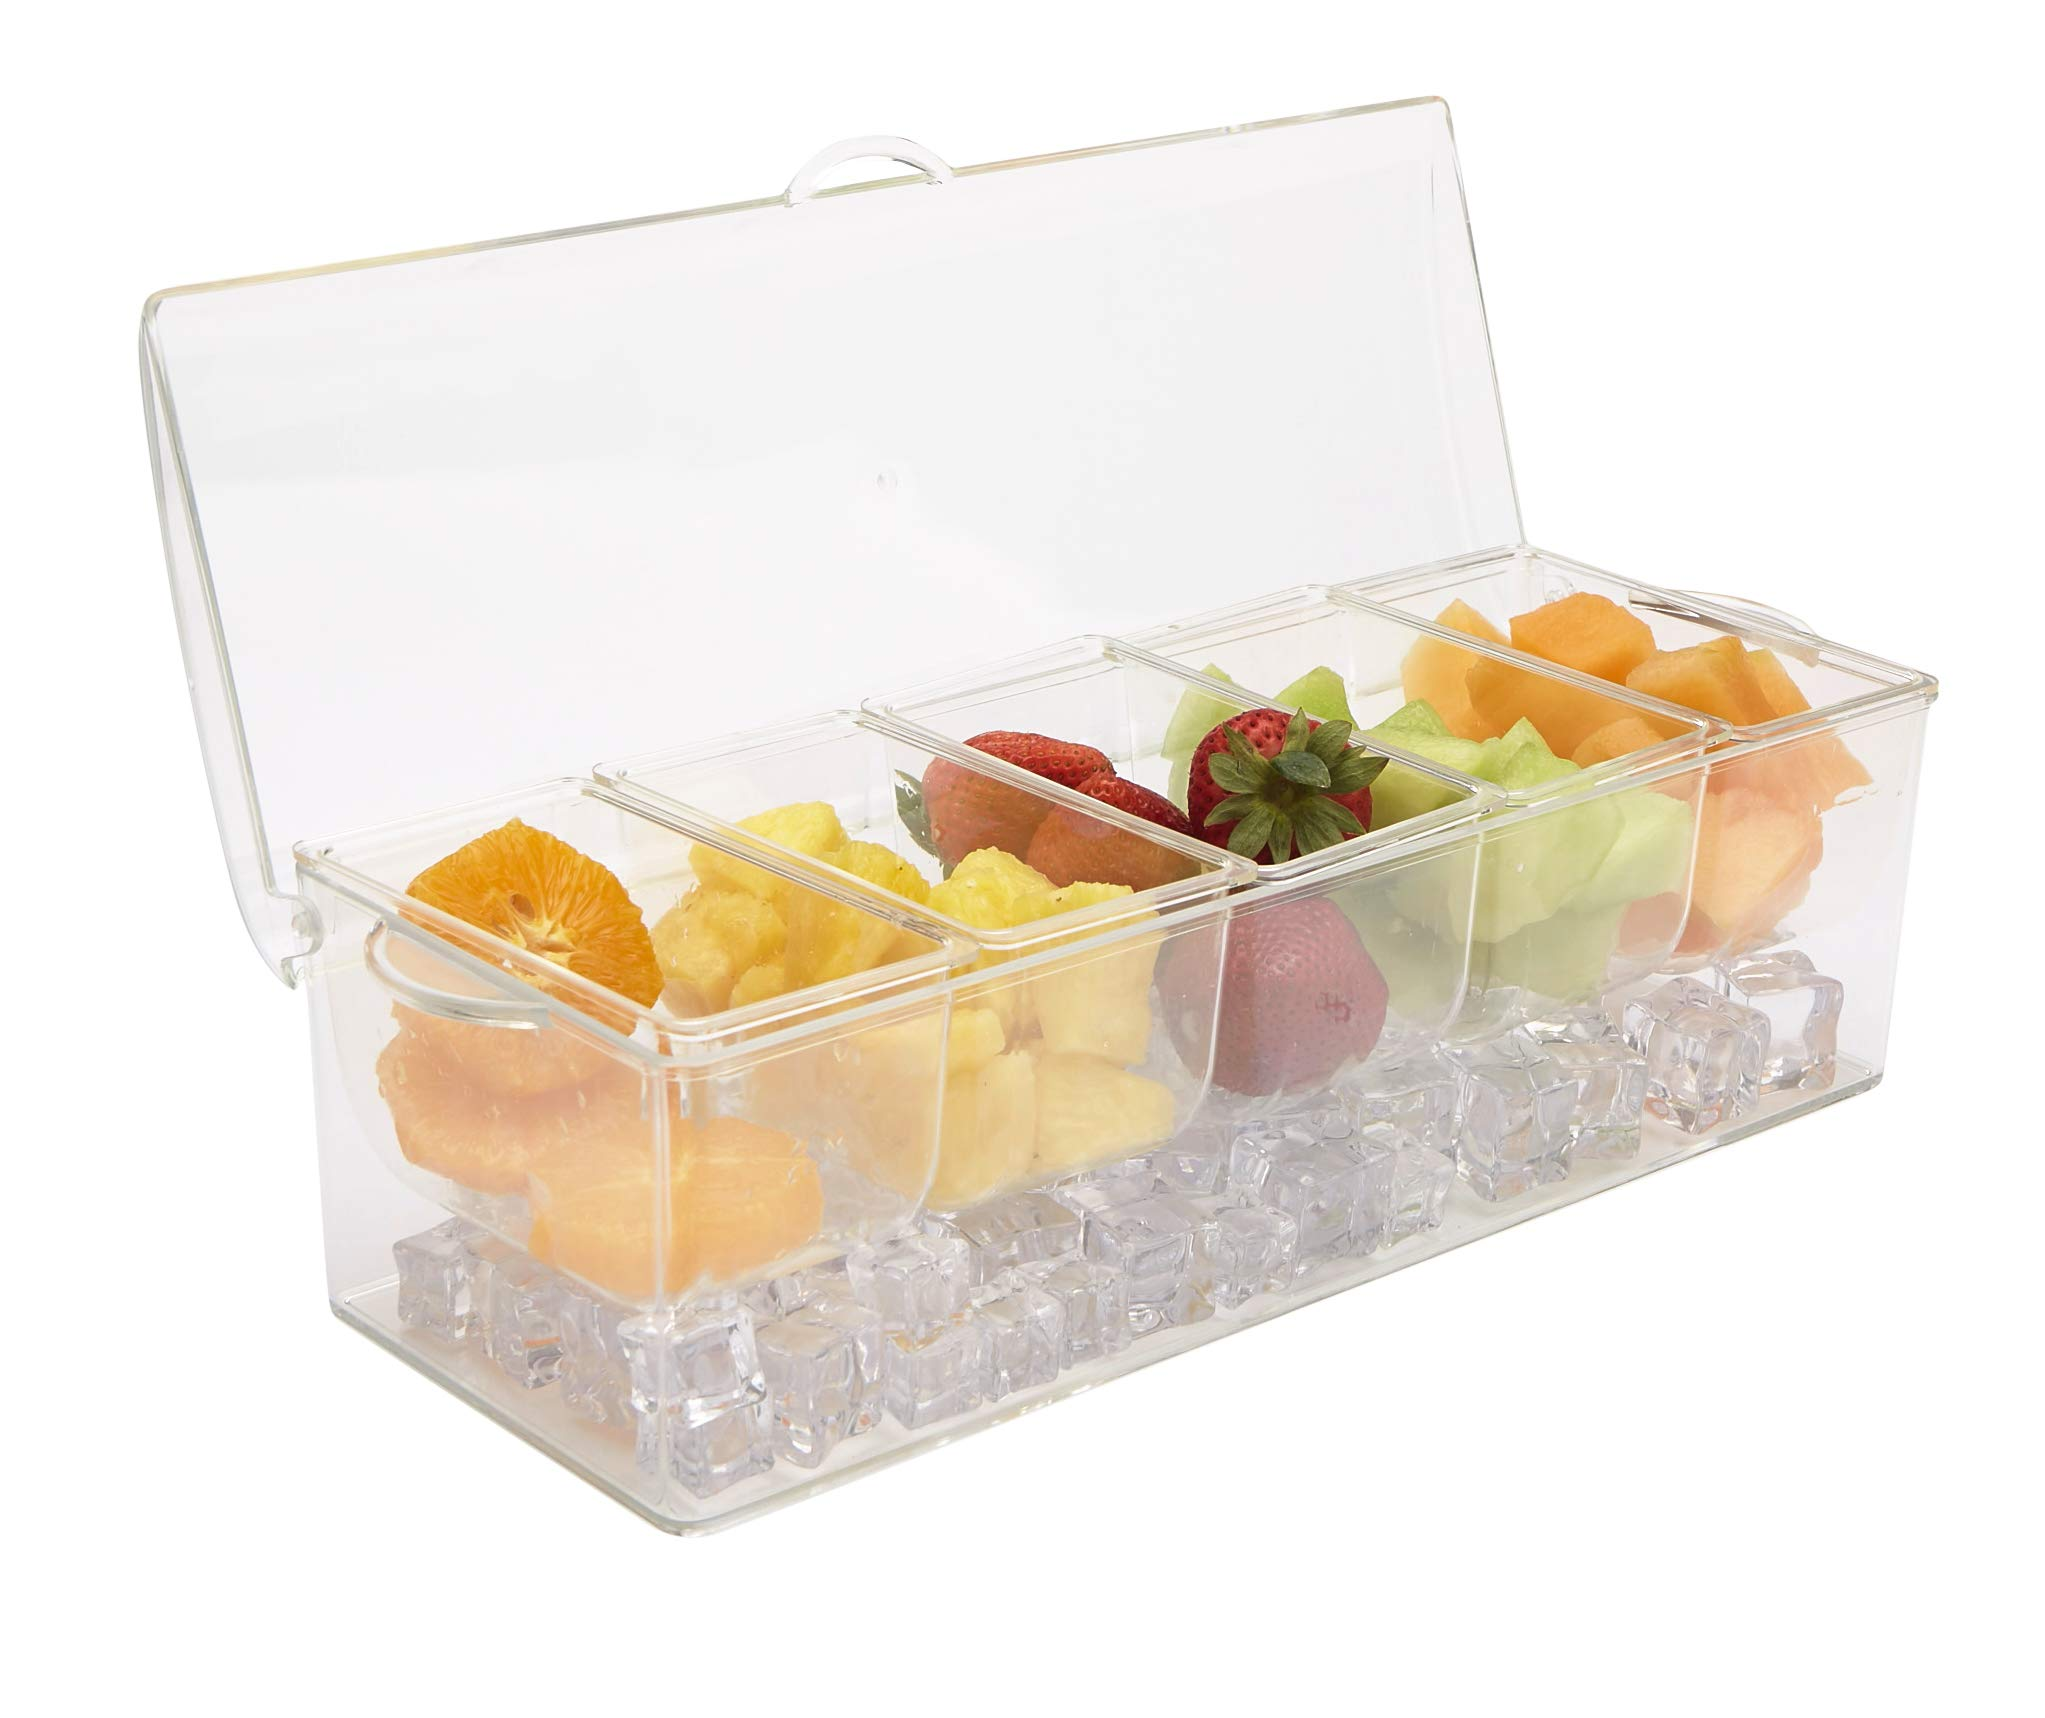 Mind Reader 5SERVE-CLR 5 Compartment Tongs & 3 Spoons, Condiment Container, Chilled Acrylic Serving Tray, Clear, One Size,